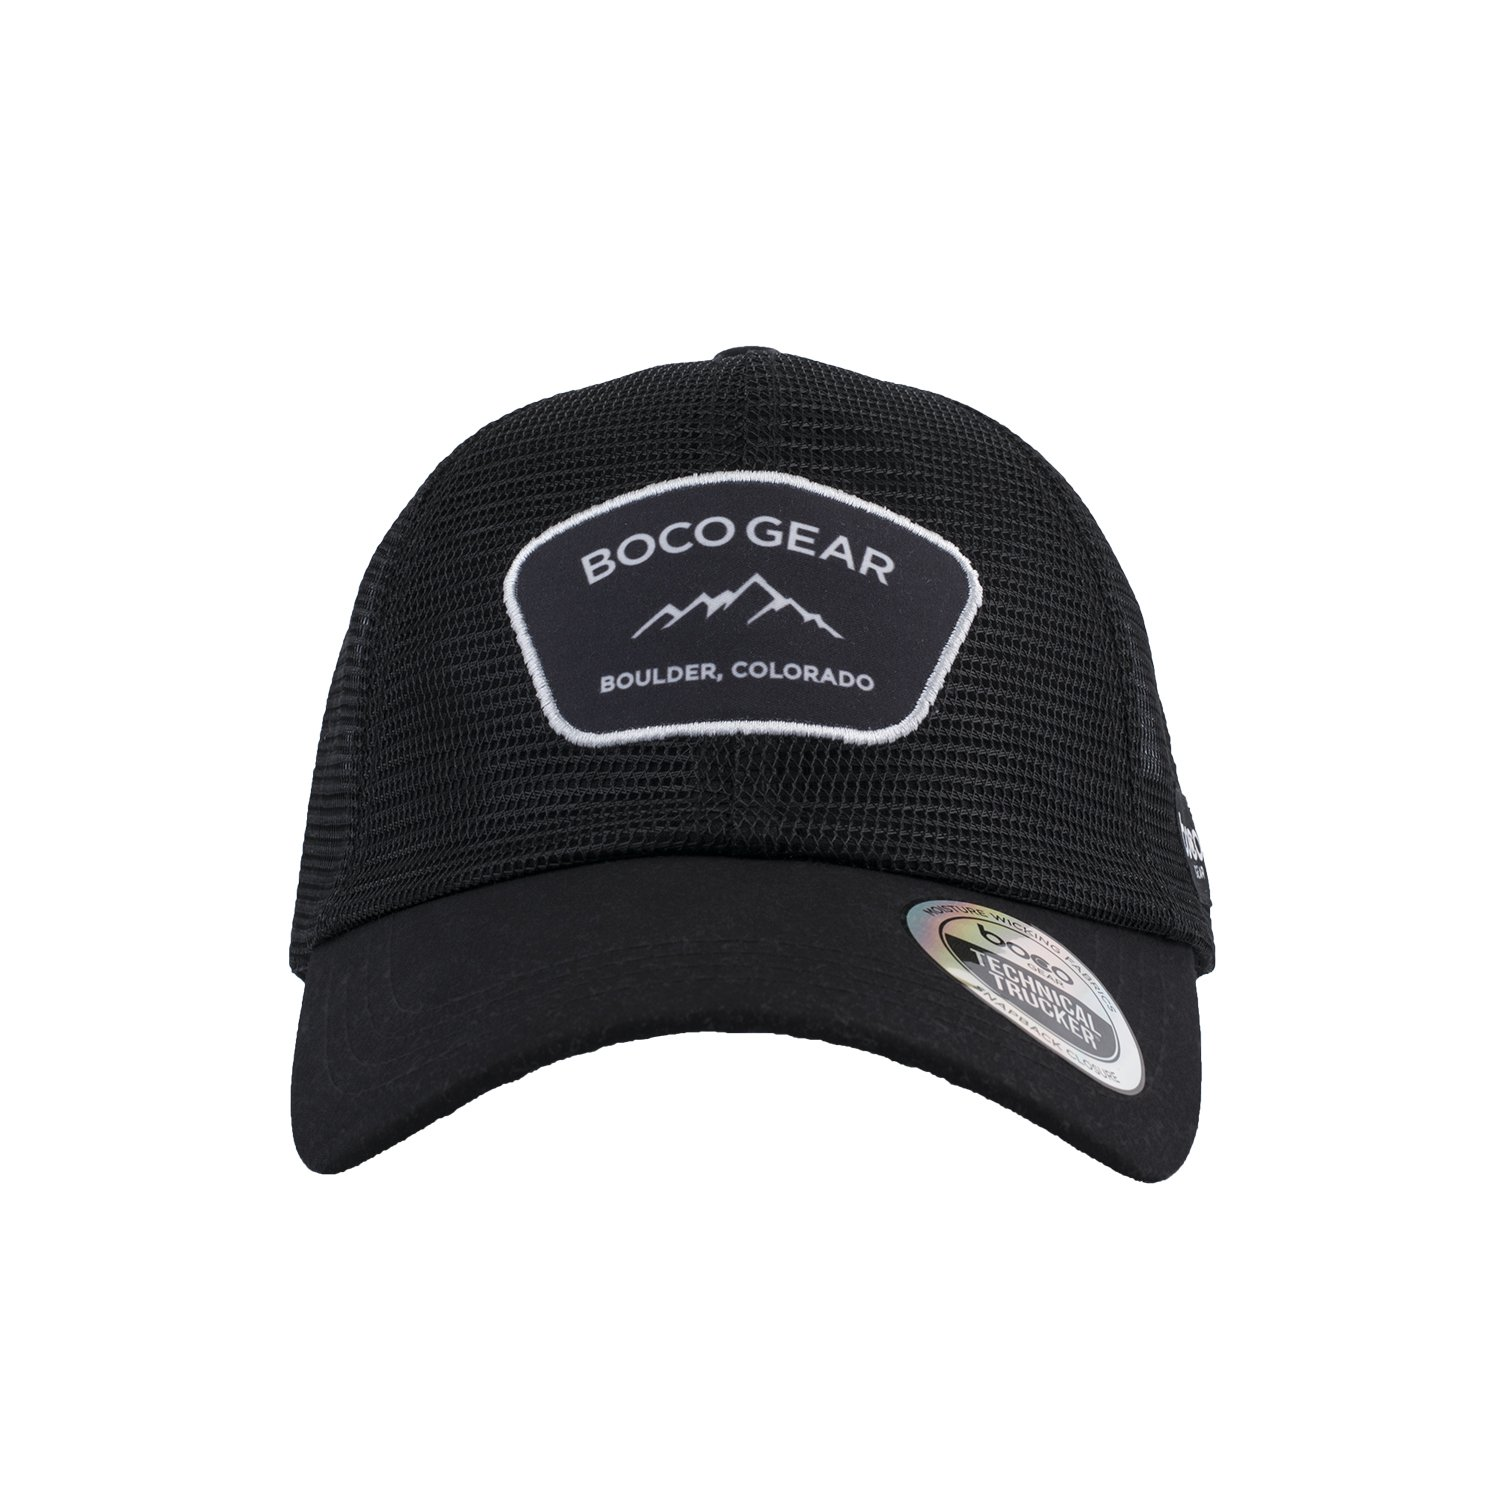 BOCO Gear Technical Trucker Hat - All Mesh